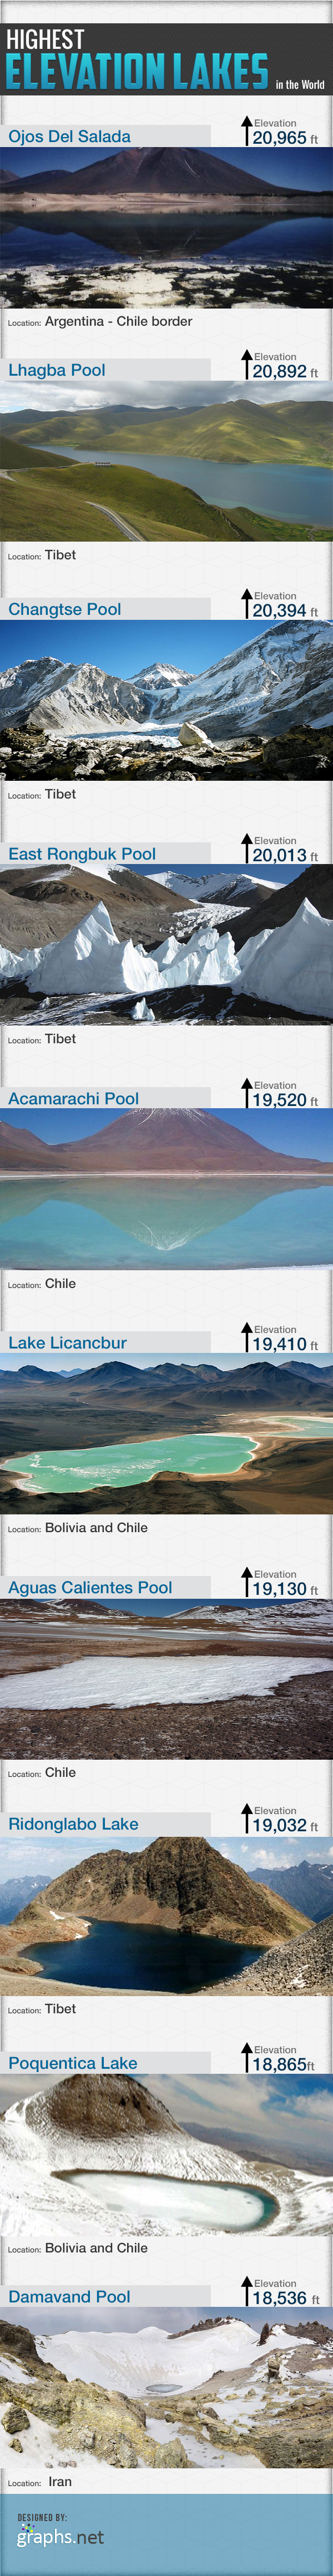 Highest Elevation Lakes in the World